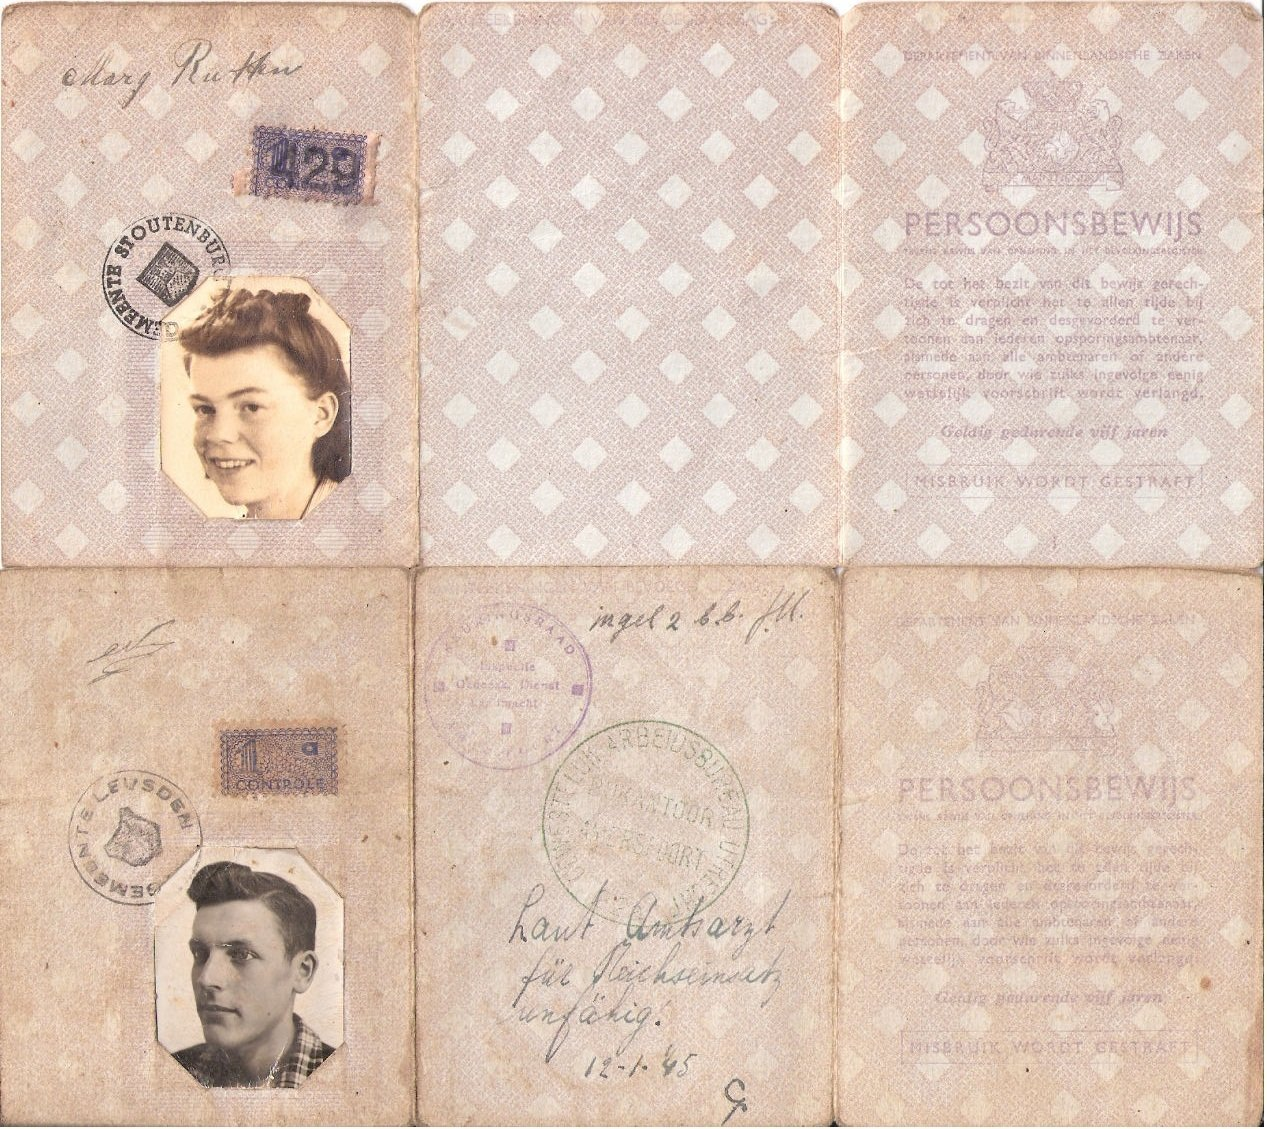 Documents showing photos of Margaret and Carl Kaas in 1945